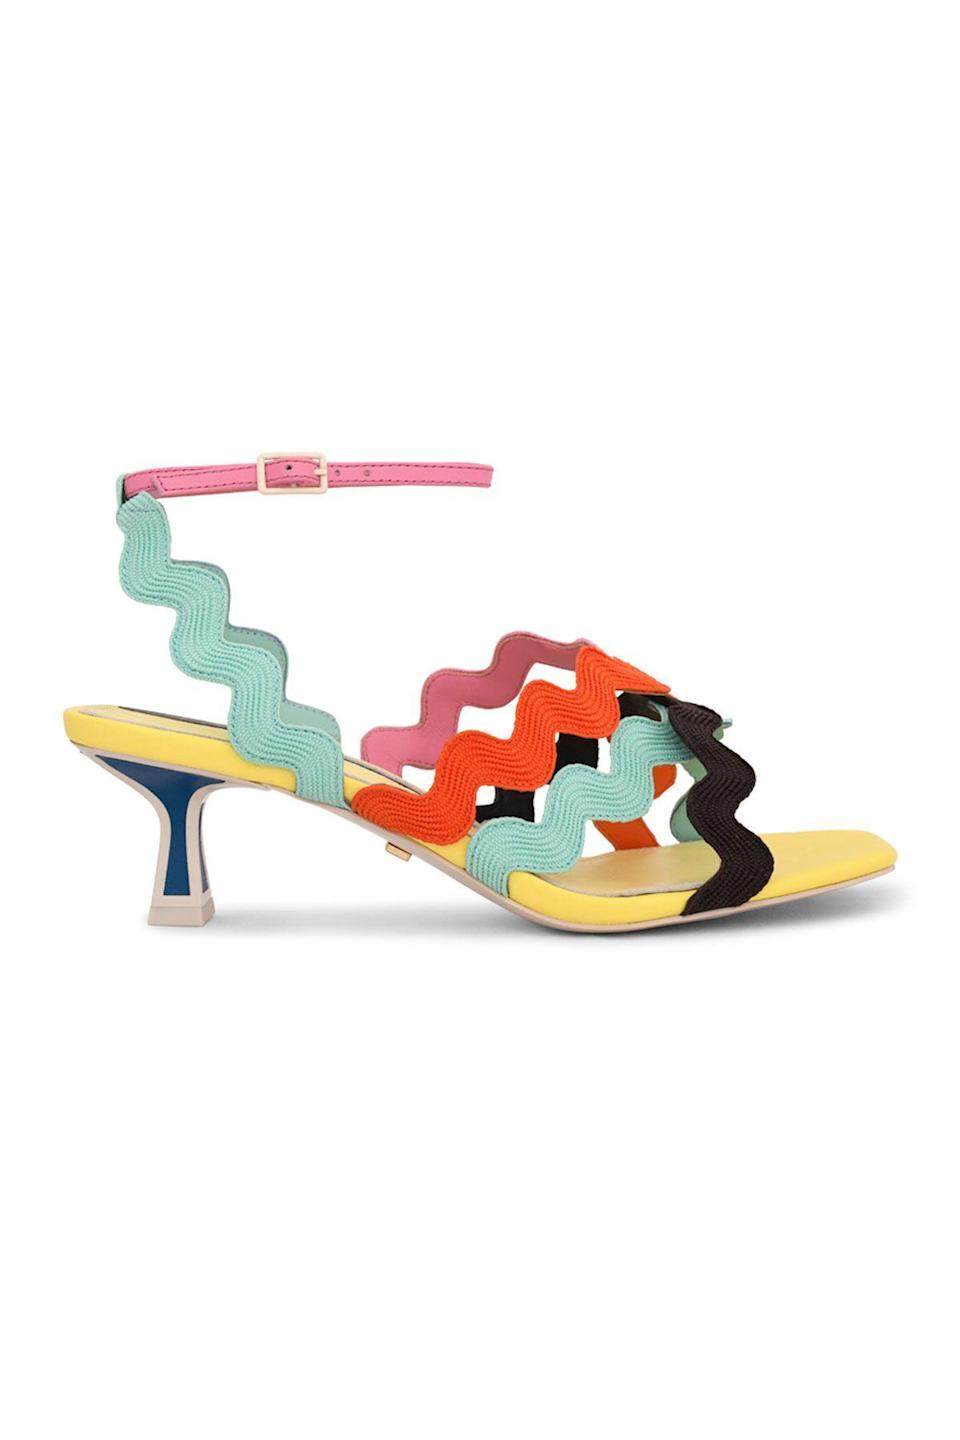 """<p><strong>Kat Maconie</strong></p><p>neimanmarcus.com</p><p><strong>$308.00</strong></p><p><a href=""""https://go.redirectingat.com?id=74968X1596630&url=https%3A%2F%2Fwww.neimanmarcus.com%2Fp%2Fkat-maconie-multicolored-wavy-strap-kitten-heel-sandals-prod239550355&sref=https%3A%2F%2Fwww.townandcountrymag.com%2Fstyle%2Ffashion-trends%2Fg36474527%2Fstatement-heels%2F"""" rel=""""nofollow noopener"""" target=""""_blank"""" data-ylk=""""slk:Shop Now"""" class=""""link rapid-noclick-resp"""">Shop Now</a></p><p>The '70s are back, Baby! These groovy sandals are ready to hit the dance floor. </p>"""